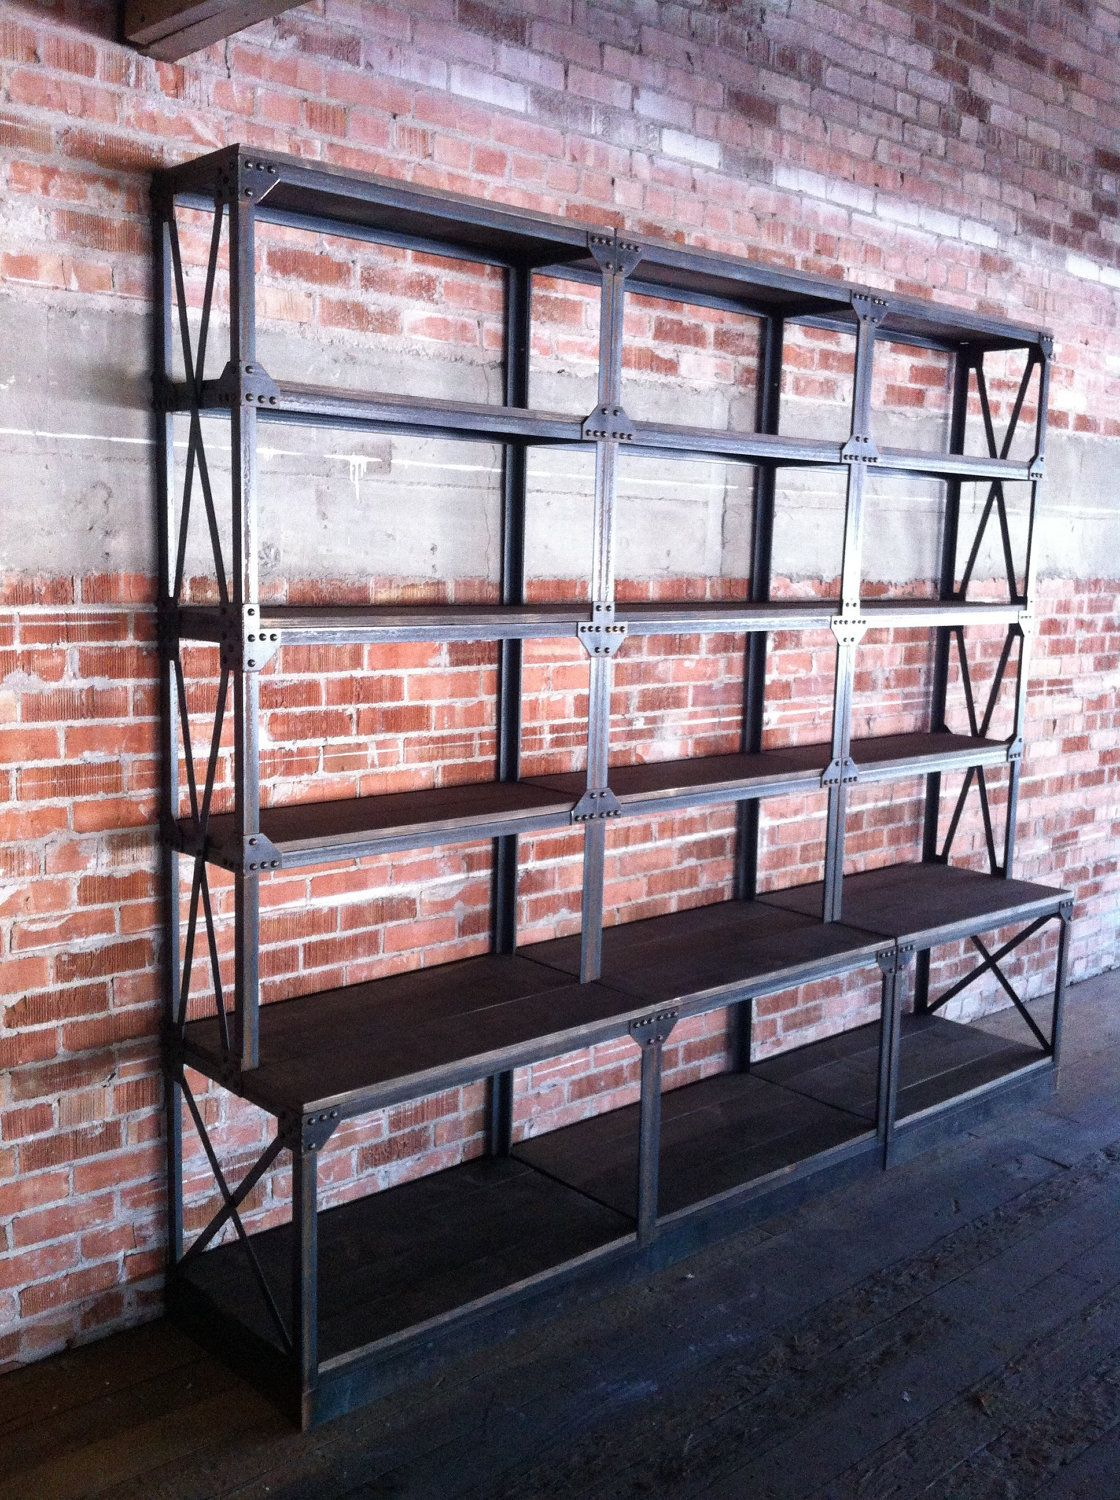 Vintage Industrial Ironworker Shelf Bookcase Fixture French Retail 695000 USD Via Etsy